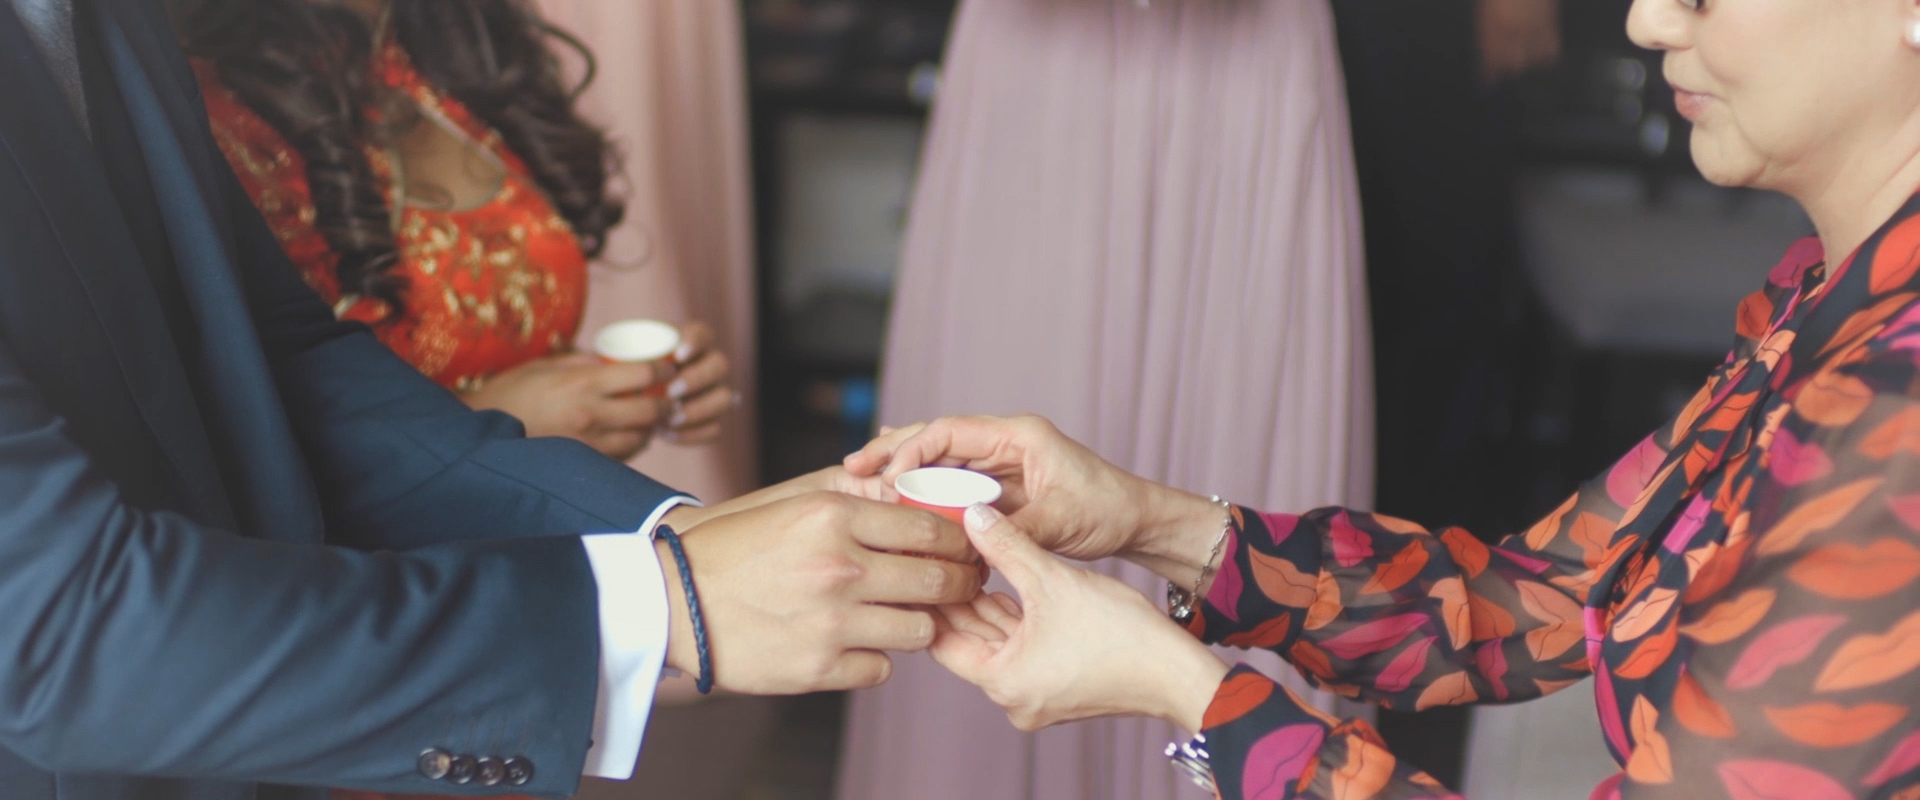 An image of a groom and mother during a traditional tea ceremony on his wedding day; taken from a Toronto Wedding Video